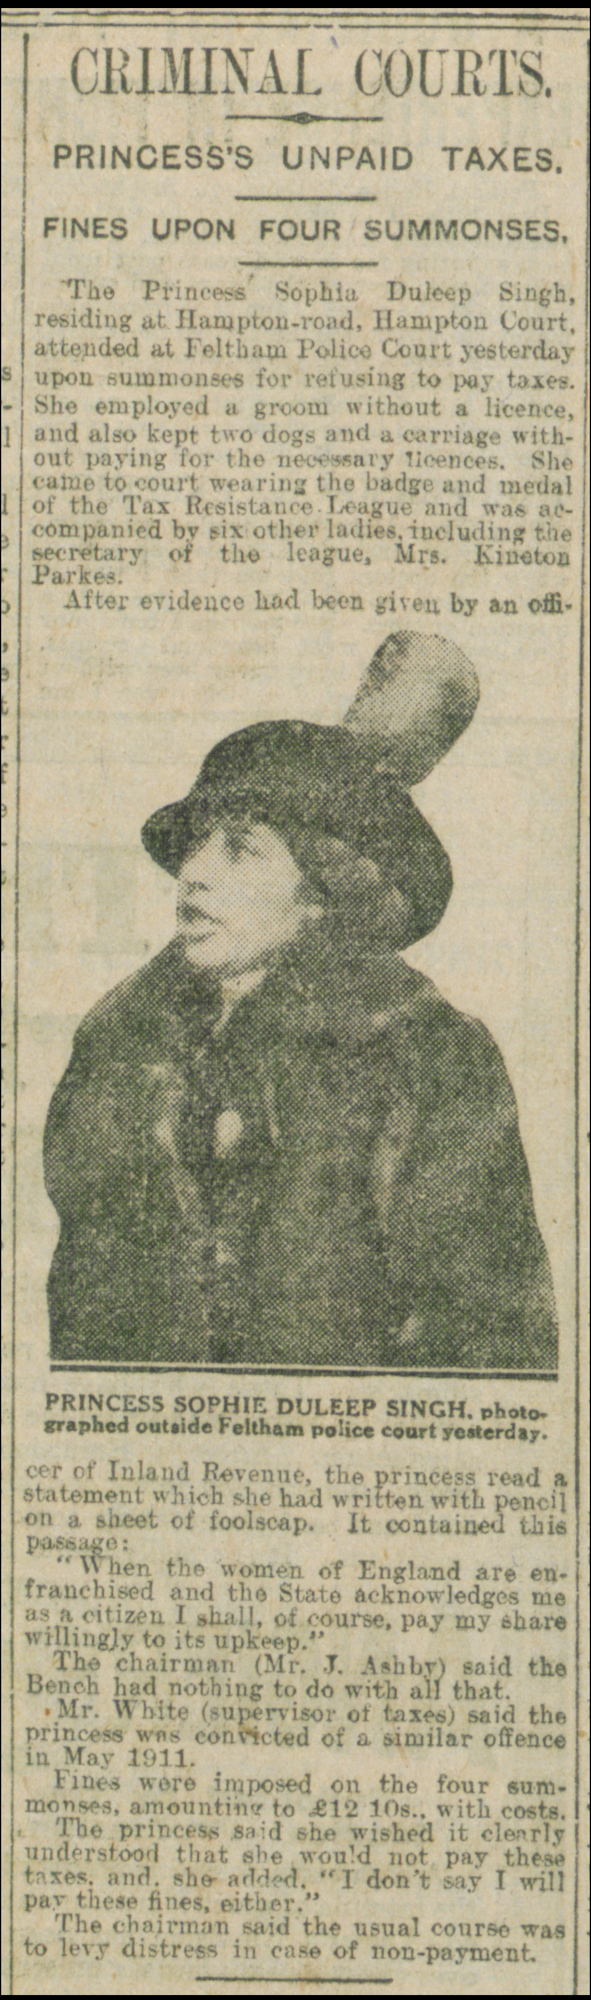 Newspaper article about Sophia Duleep Singh's trial